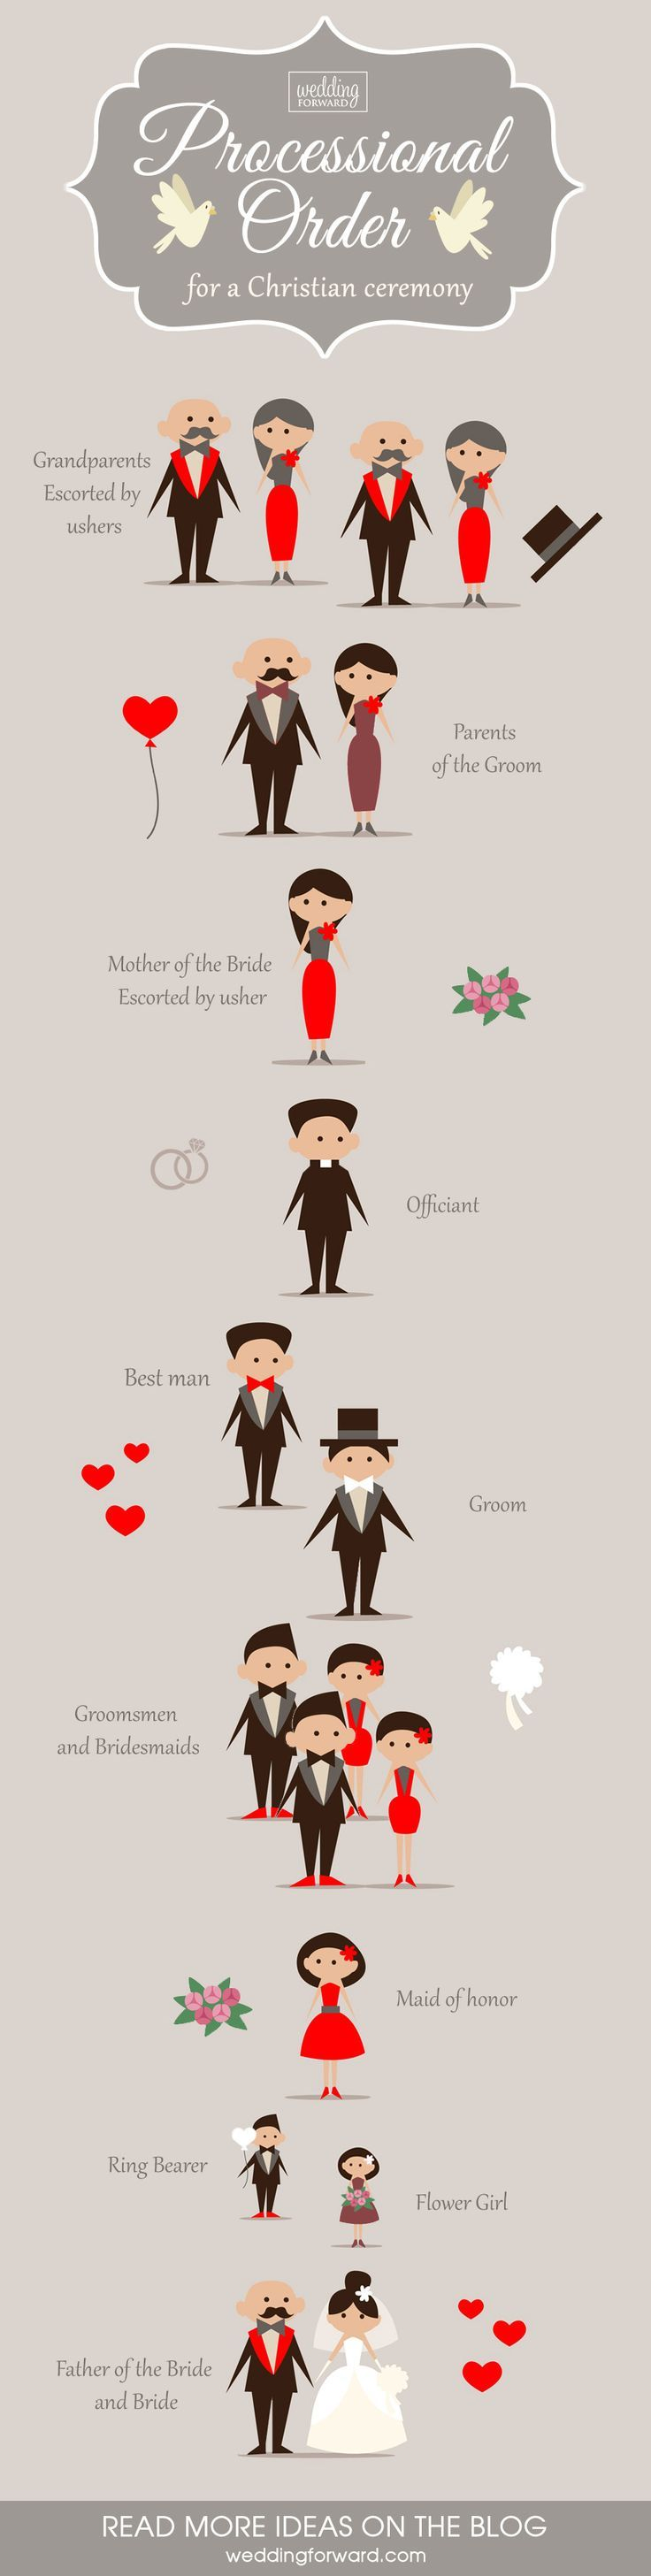 Wedding processional order 4 ideas and rules wedding wedding processional order 4 ideas and rules junglespirit Images